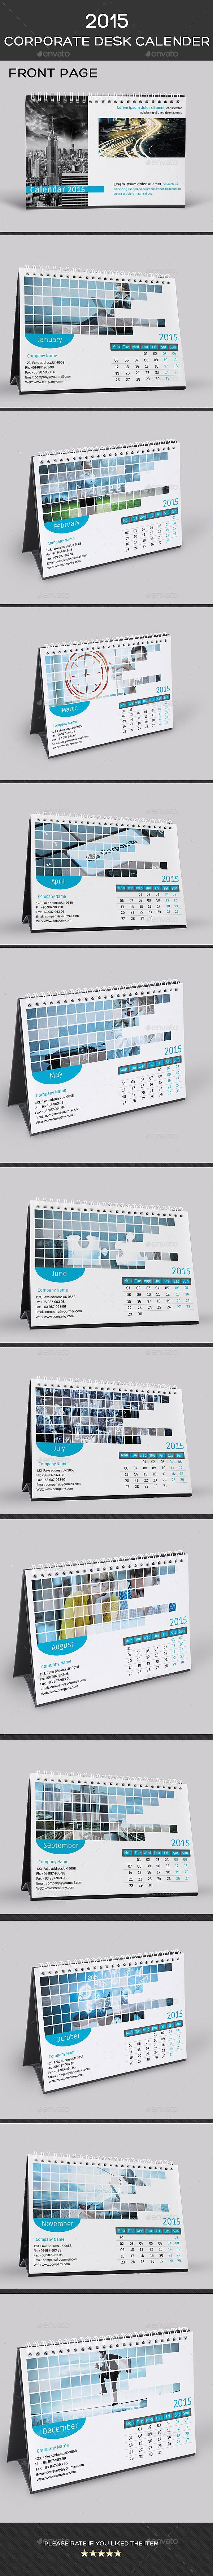 96 Best Calendar Images On Pinterest Calendar Templates Schedule